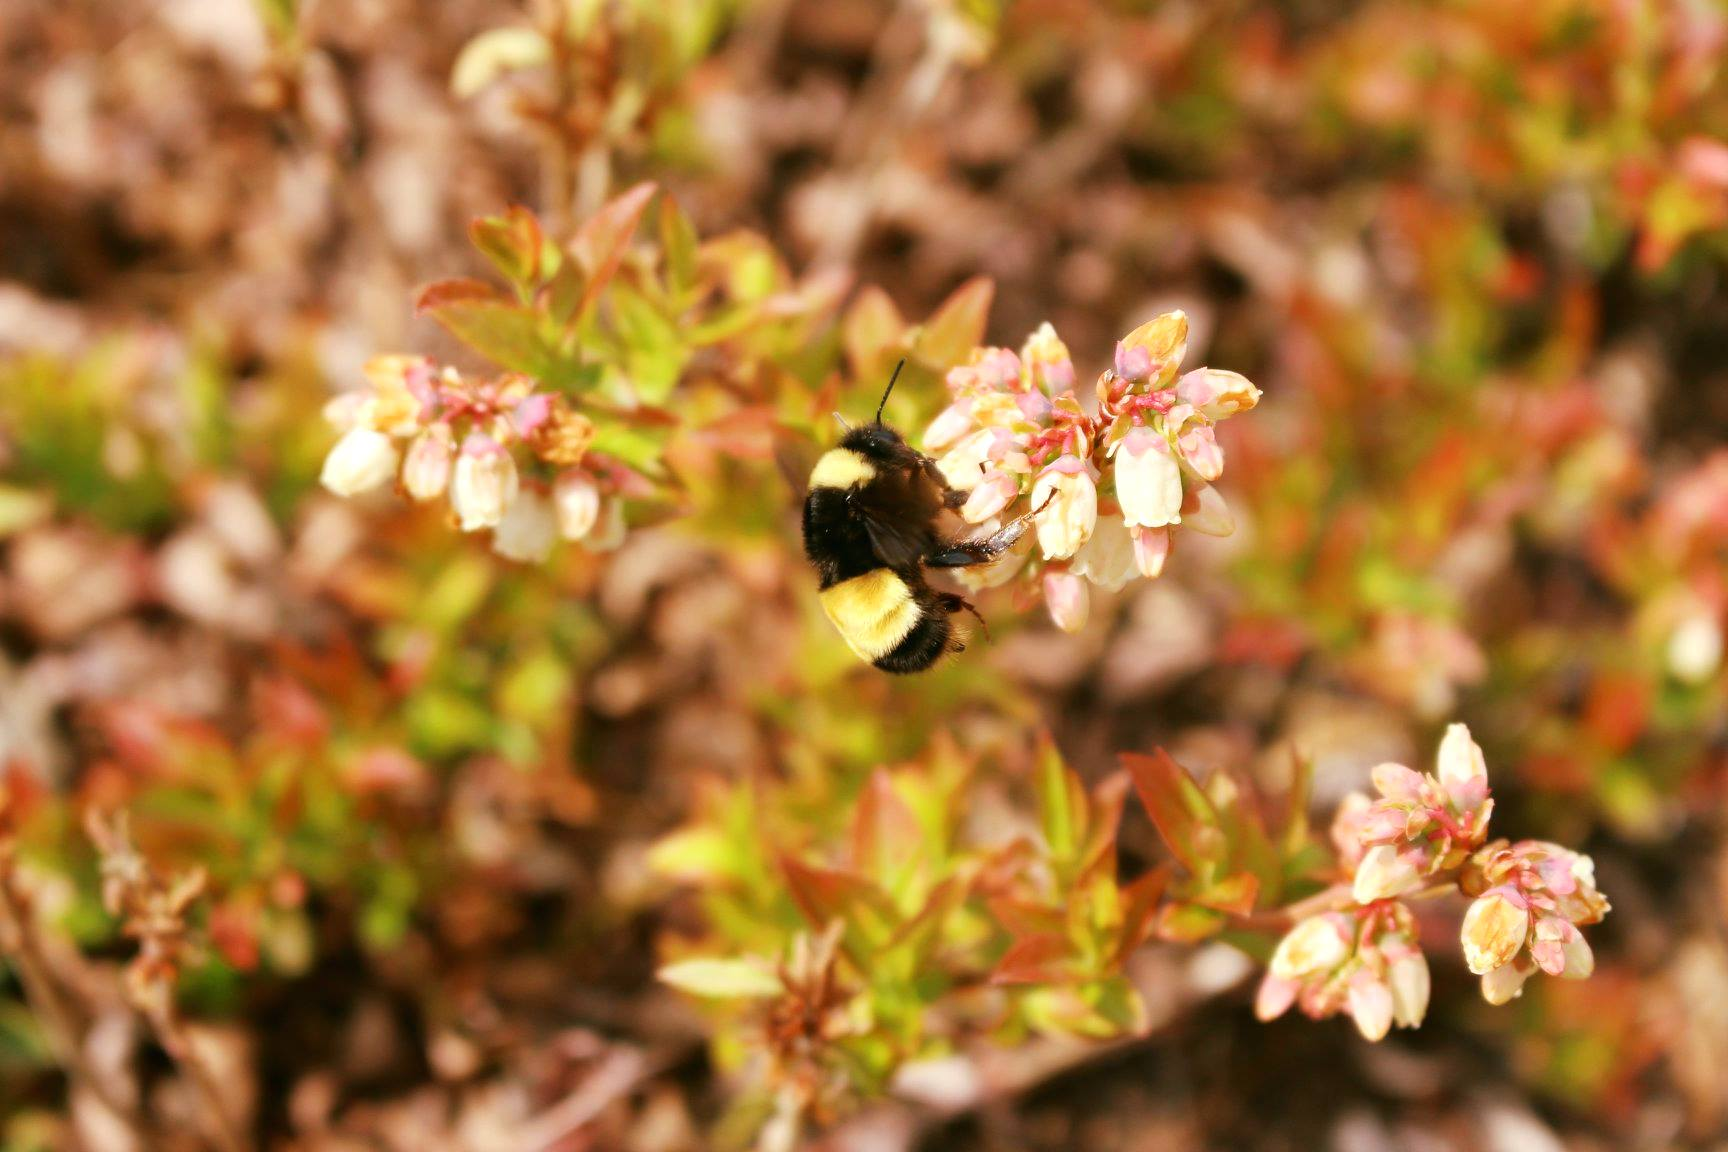 A fuzzy bumble bee with black and yellow stripes collects pollen from a pinkish blossom, in a landscape tinged red by changing leaves.